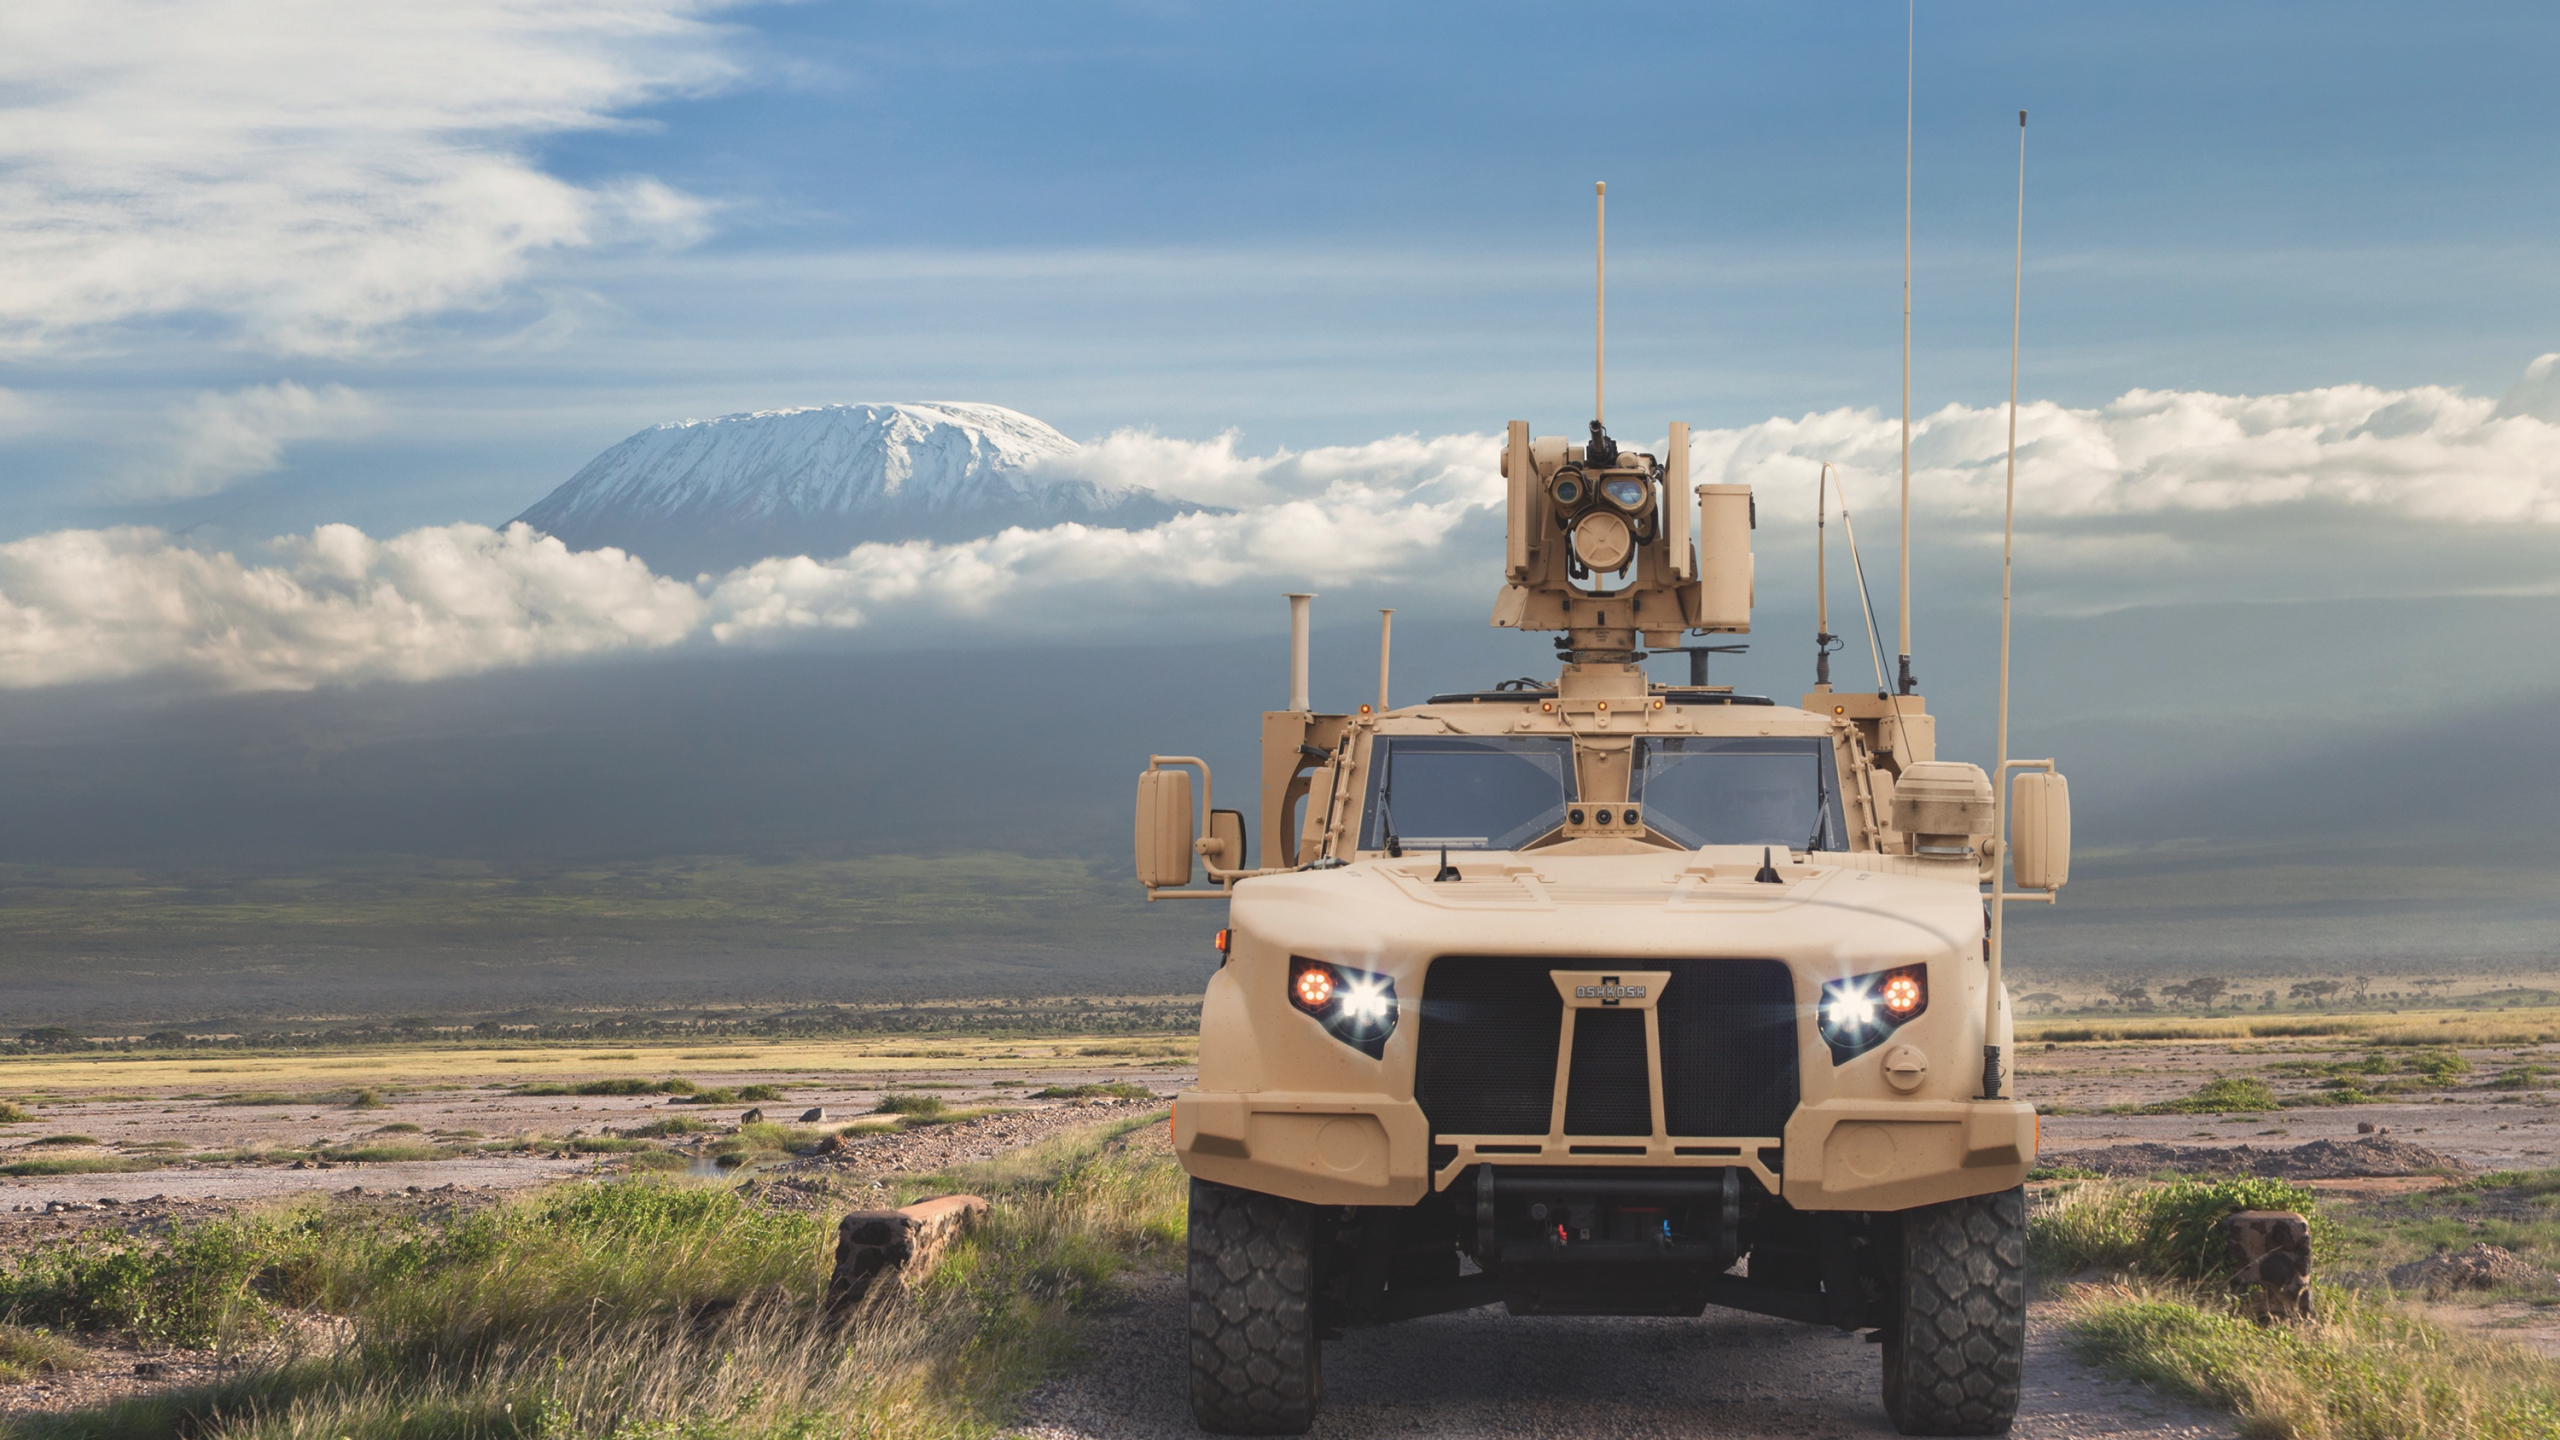 Download 2560x1440 Wallpaper Joint Light Tactical Vehicle, Front